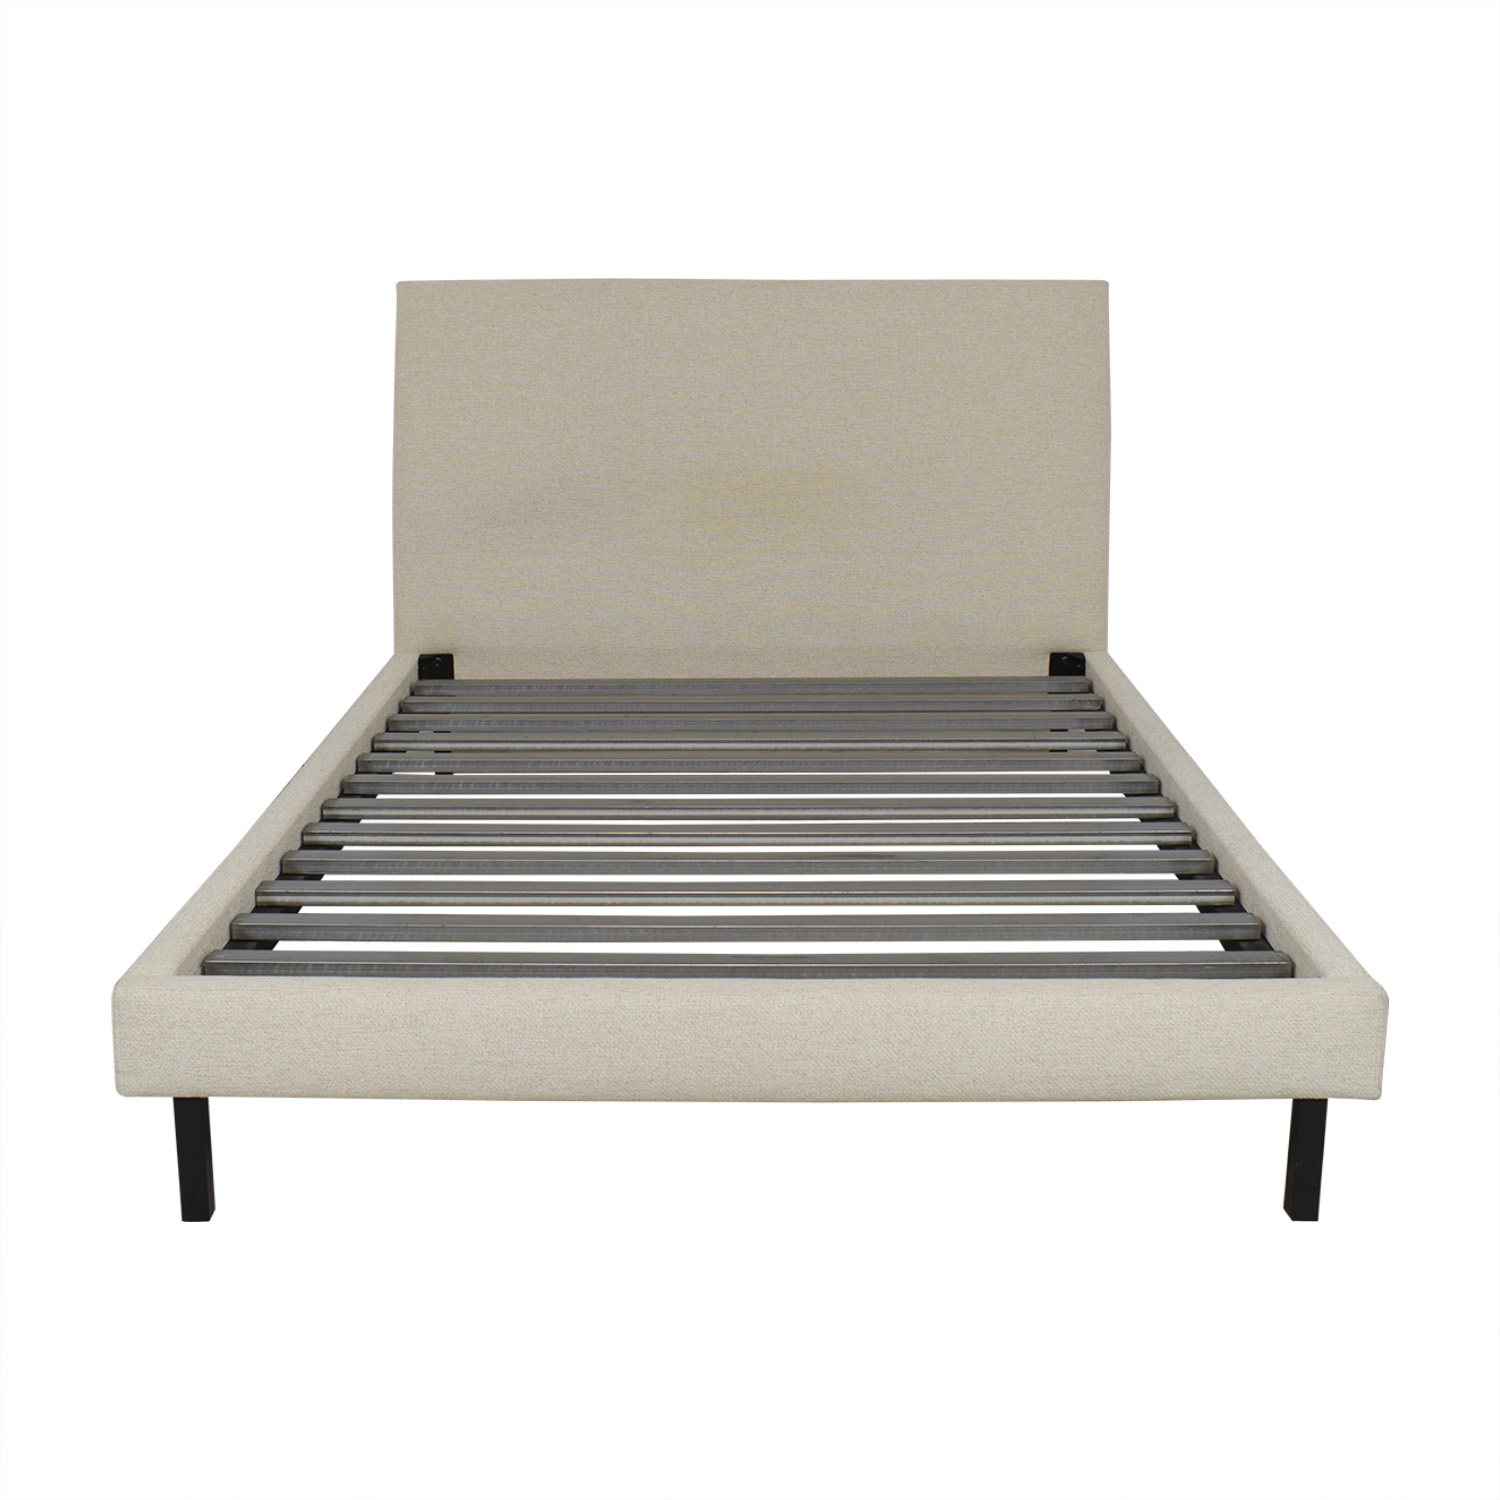 Room & Board Ella Queen Bed / Bed Frames